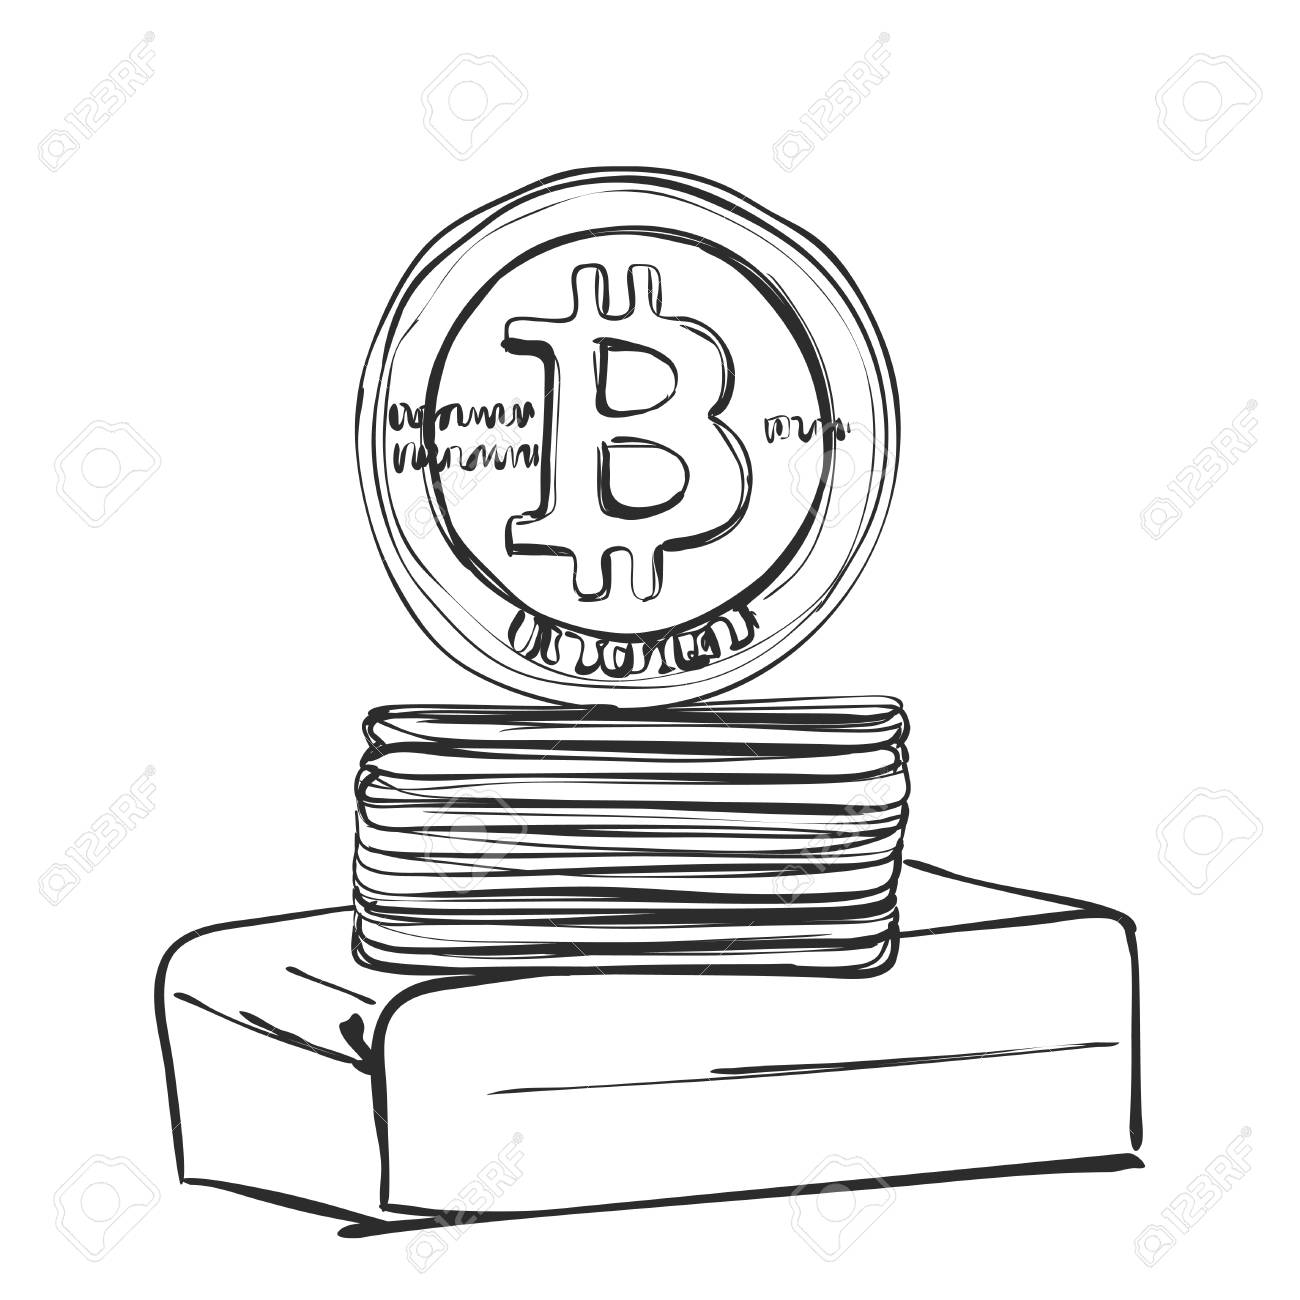 1300x1300 Bitcoin Hand Drawn Sketch. Cryptography Royalty Free Cliparts